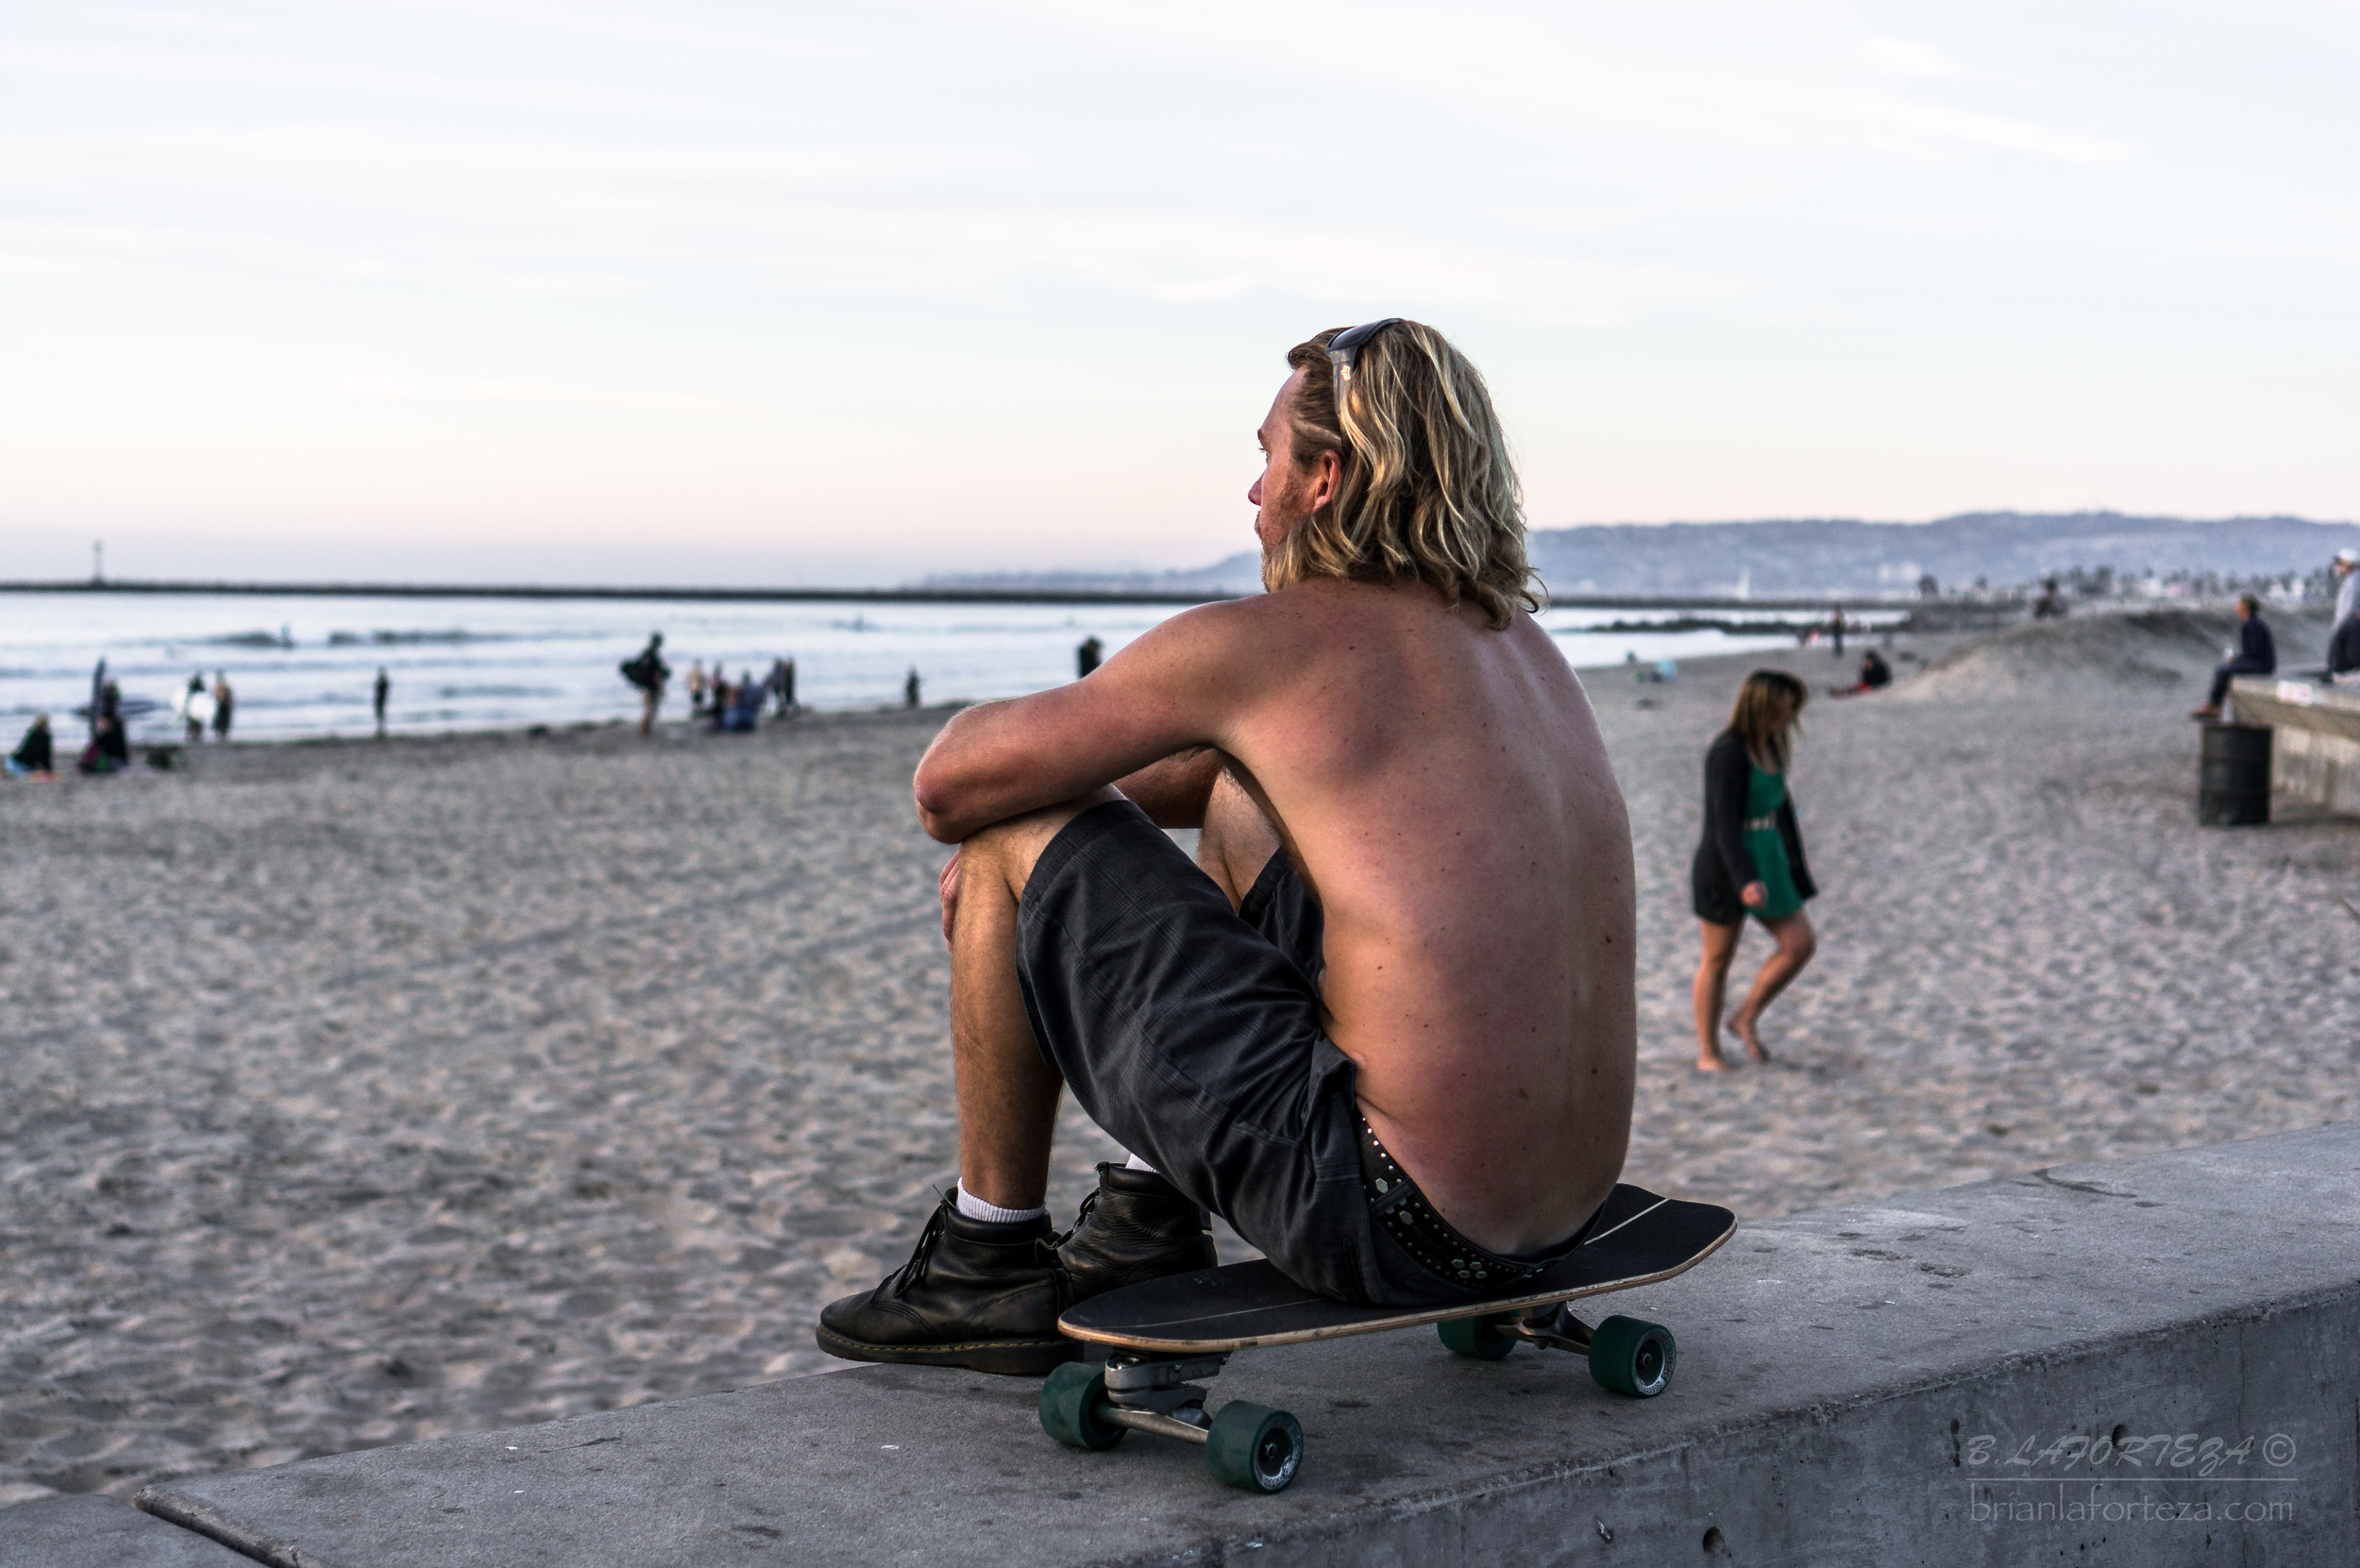 Ocean Beach Skater Colour.jpg